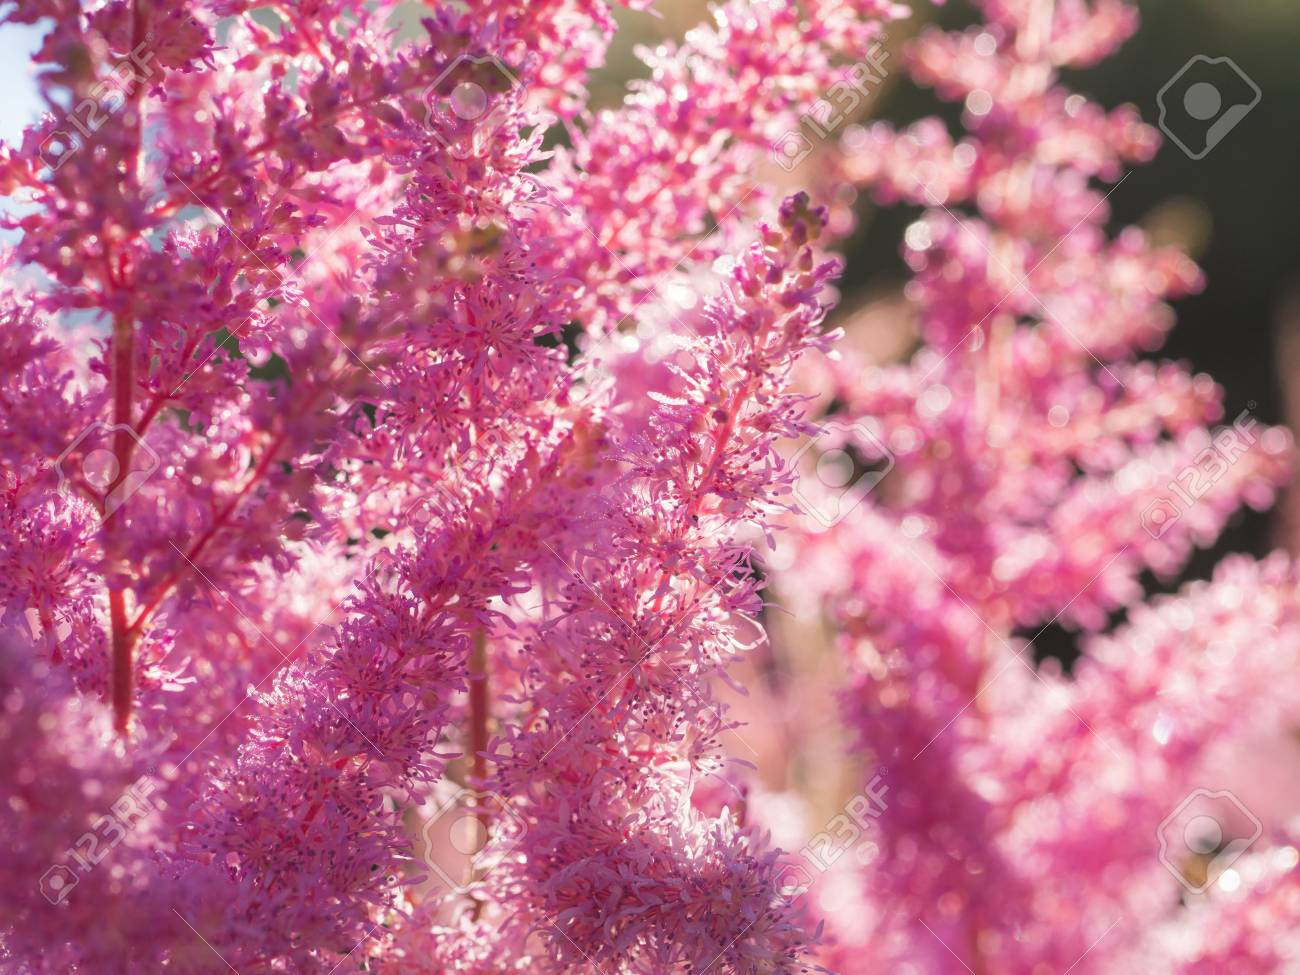 Beautiful Bush Of Flowers Astilbe With A Fluffy Pink Panicles Stock